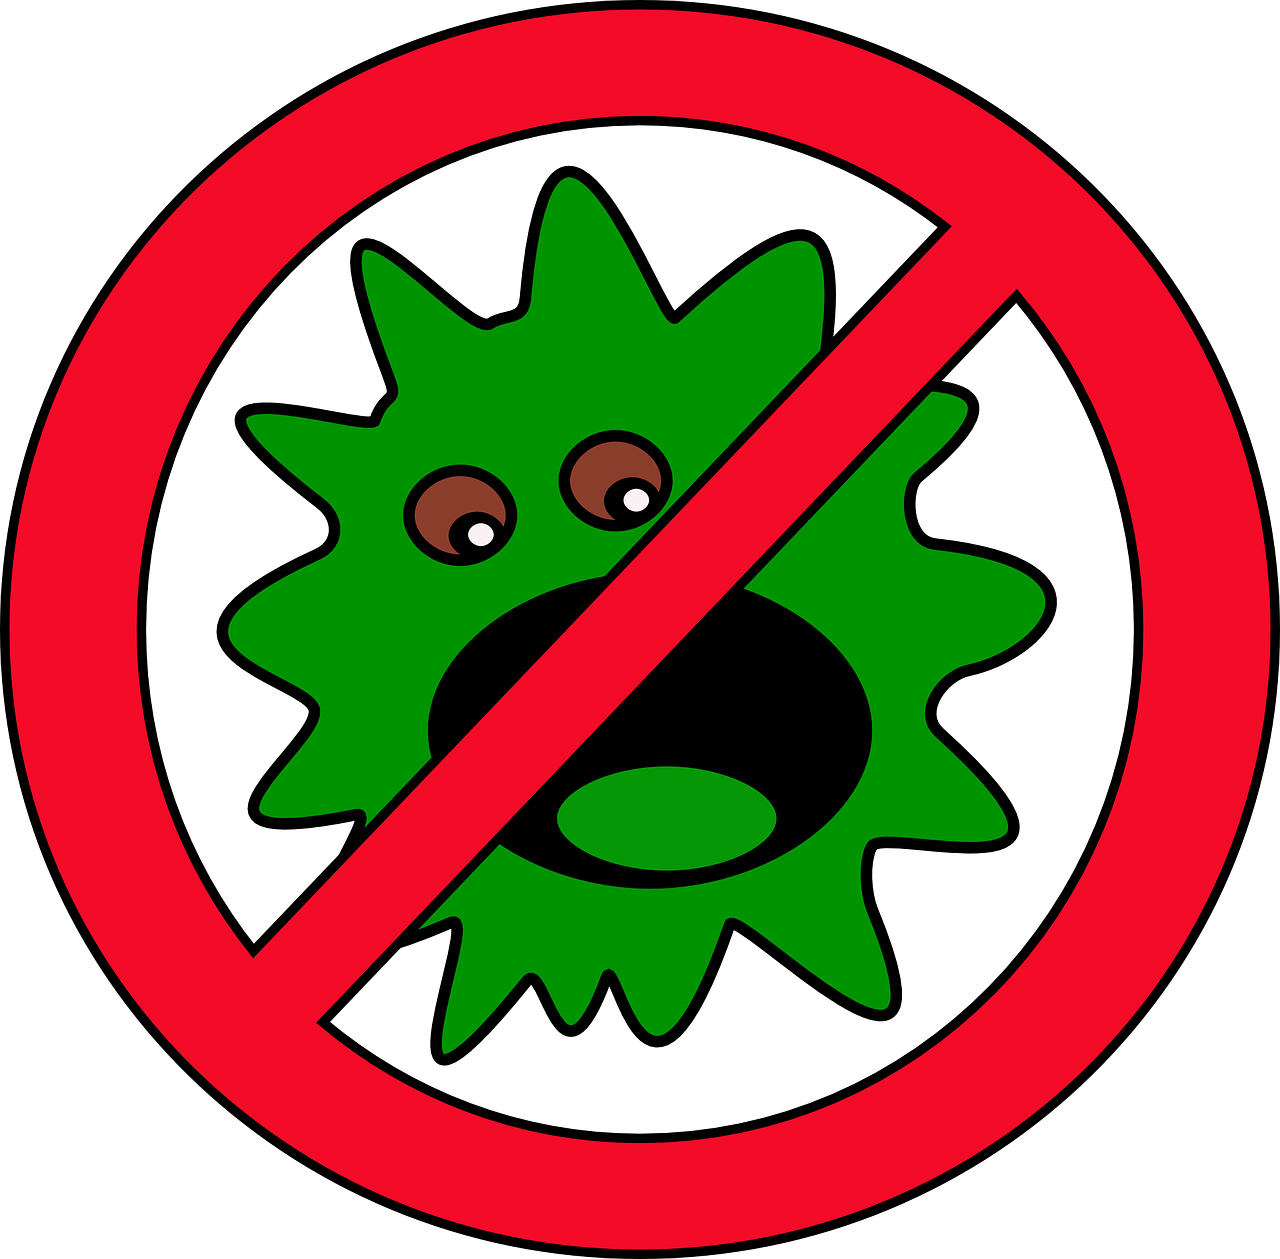 No Germs image